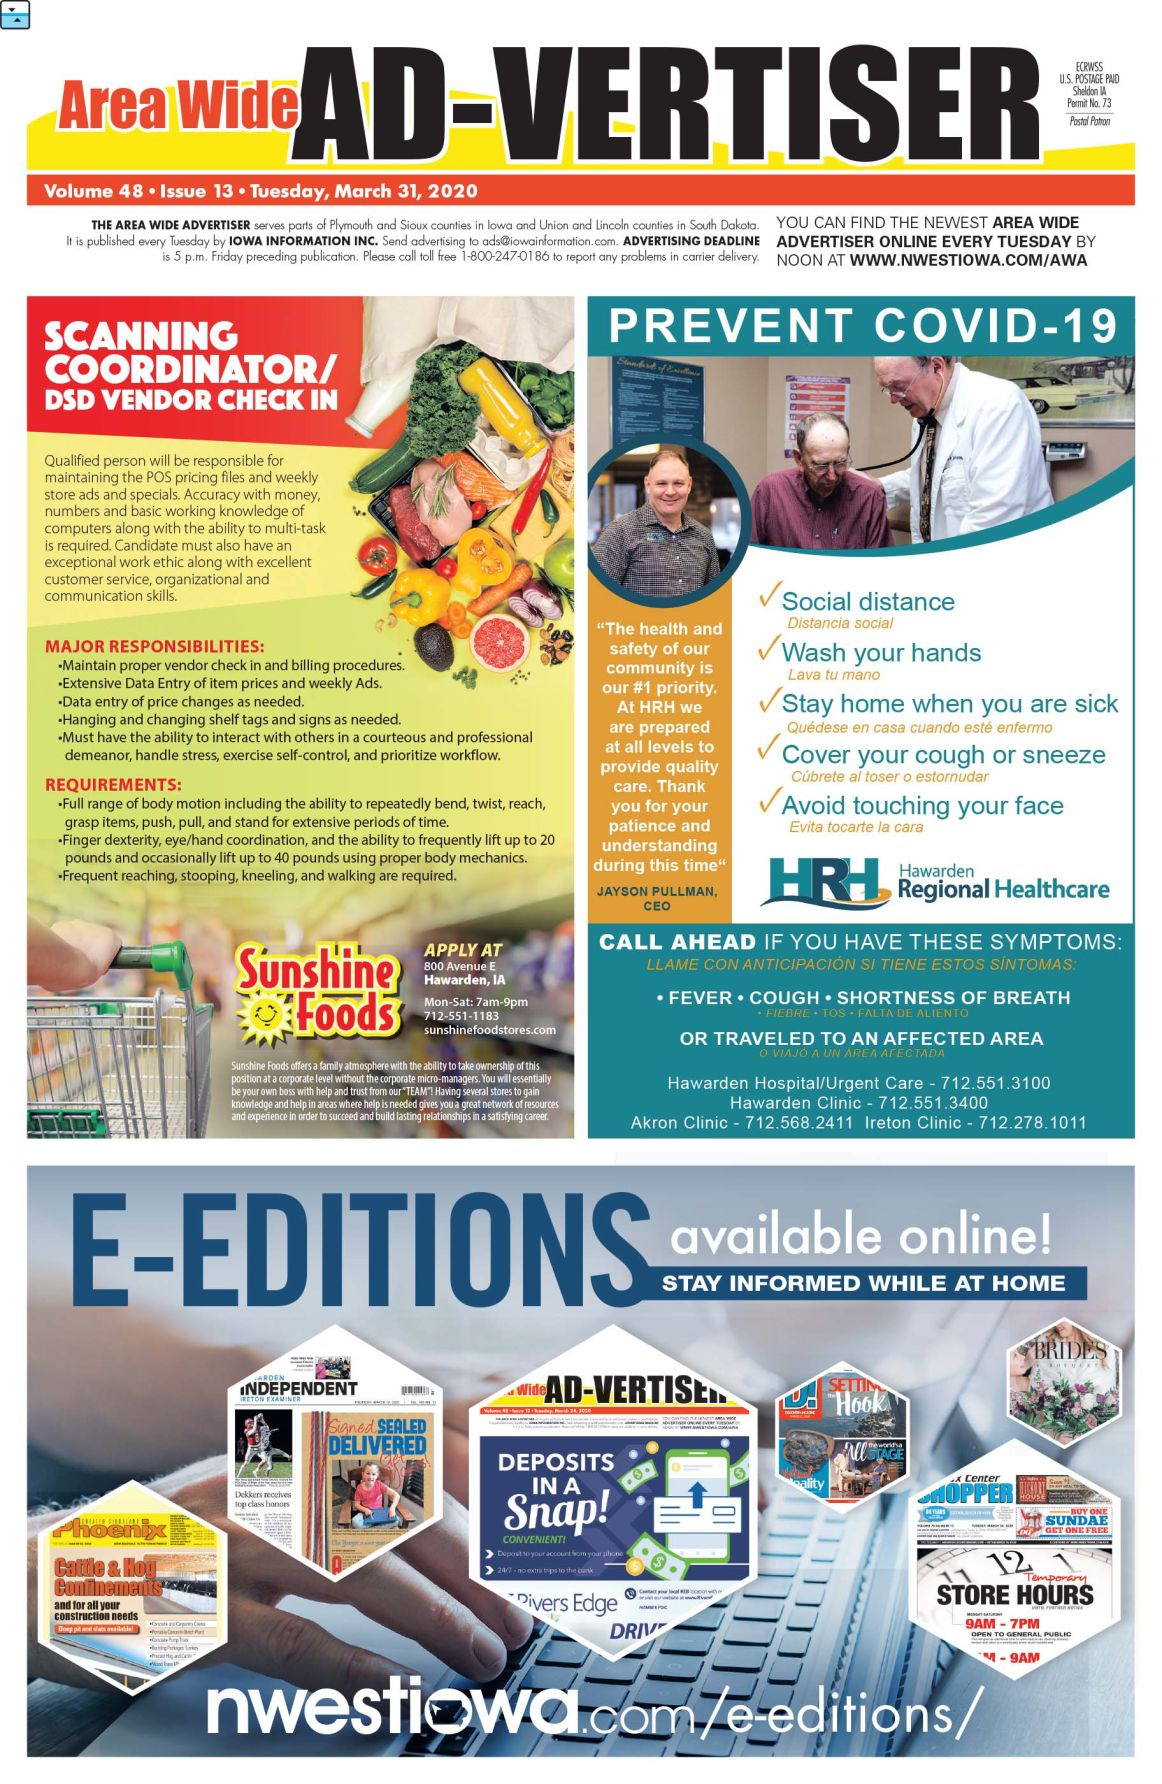 Area Wide Ad-vertiser: March 31, 2020